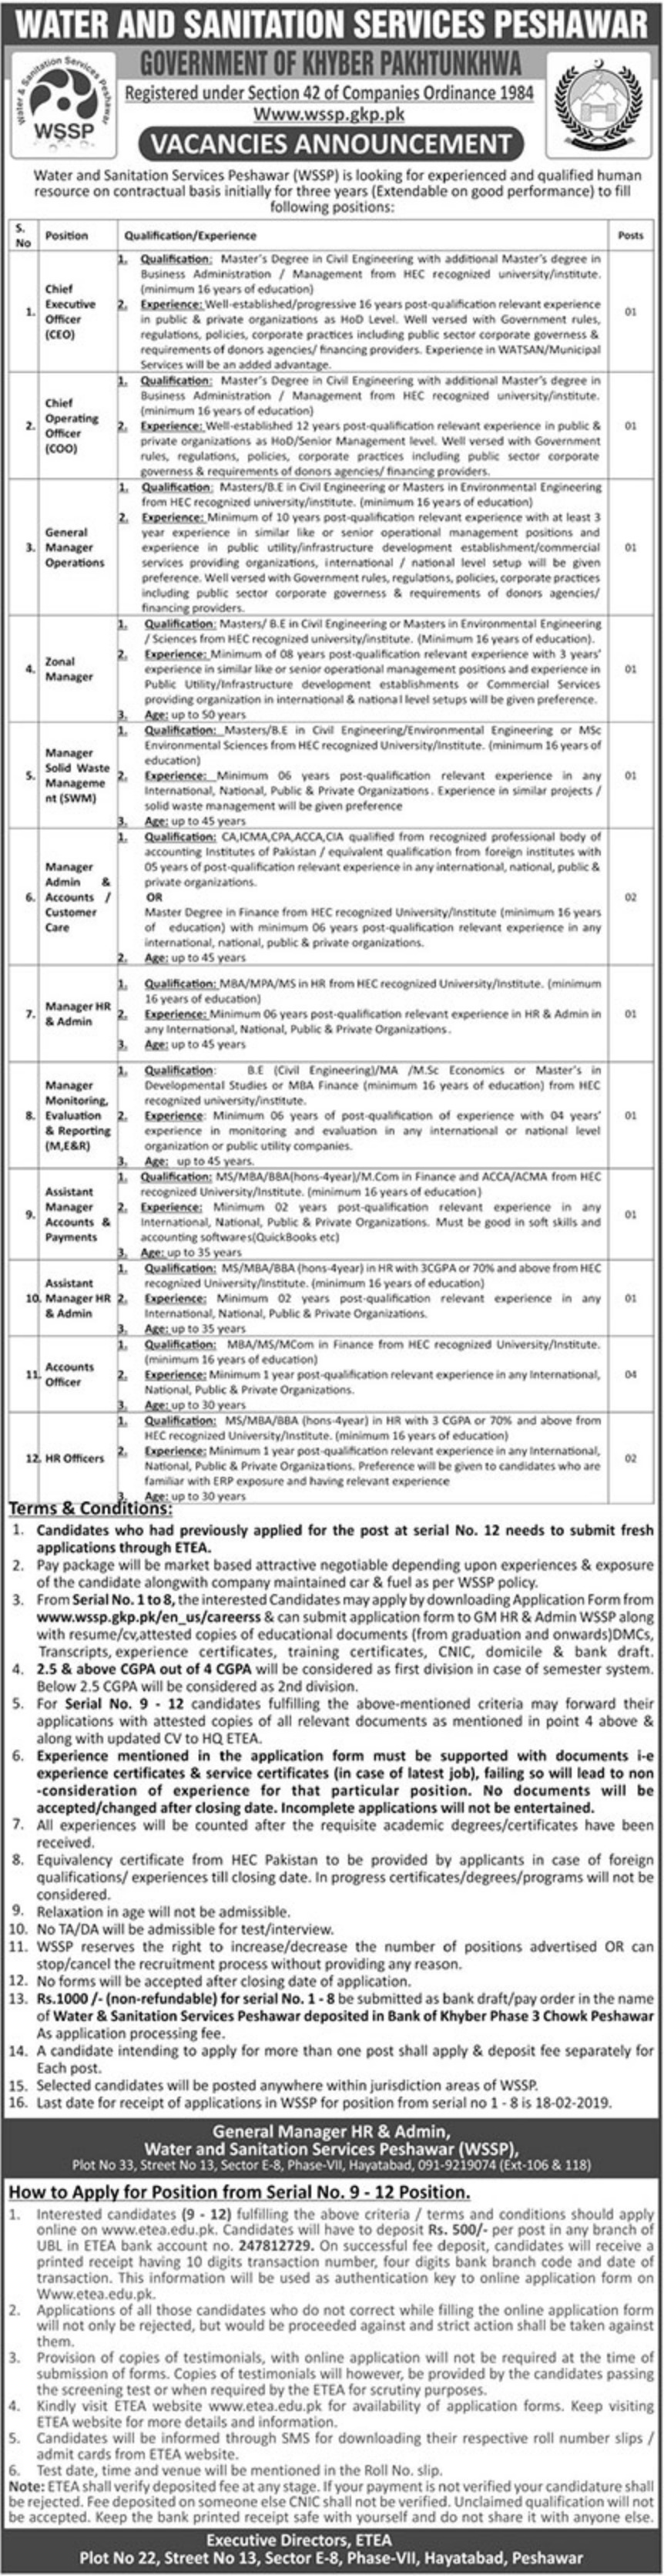 Water and Sanitation Services Peshawar Jobs 2019 WSSP KPK Latest